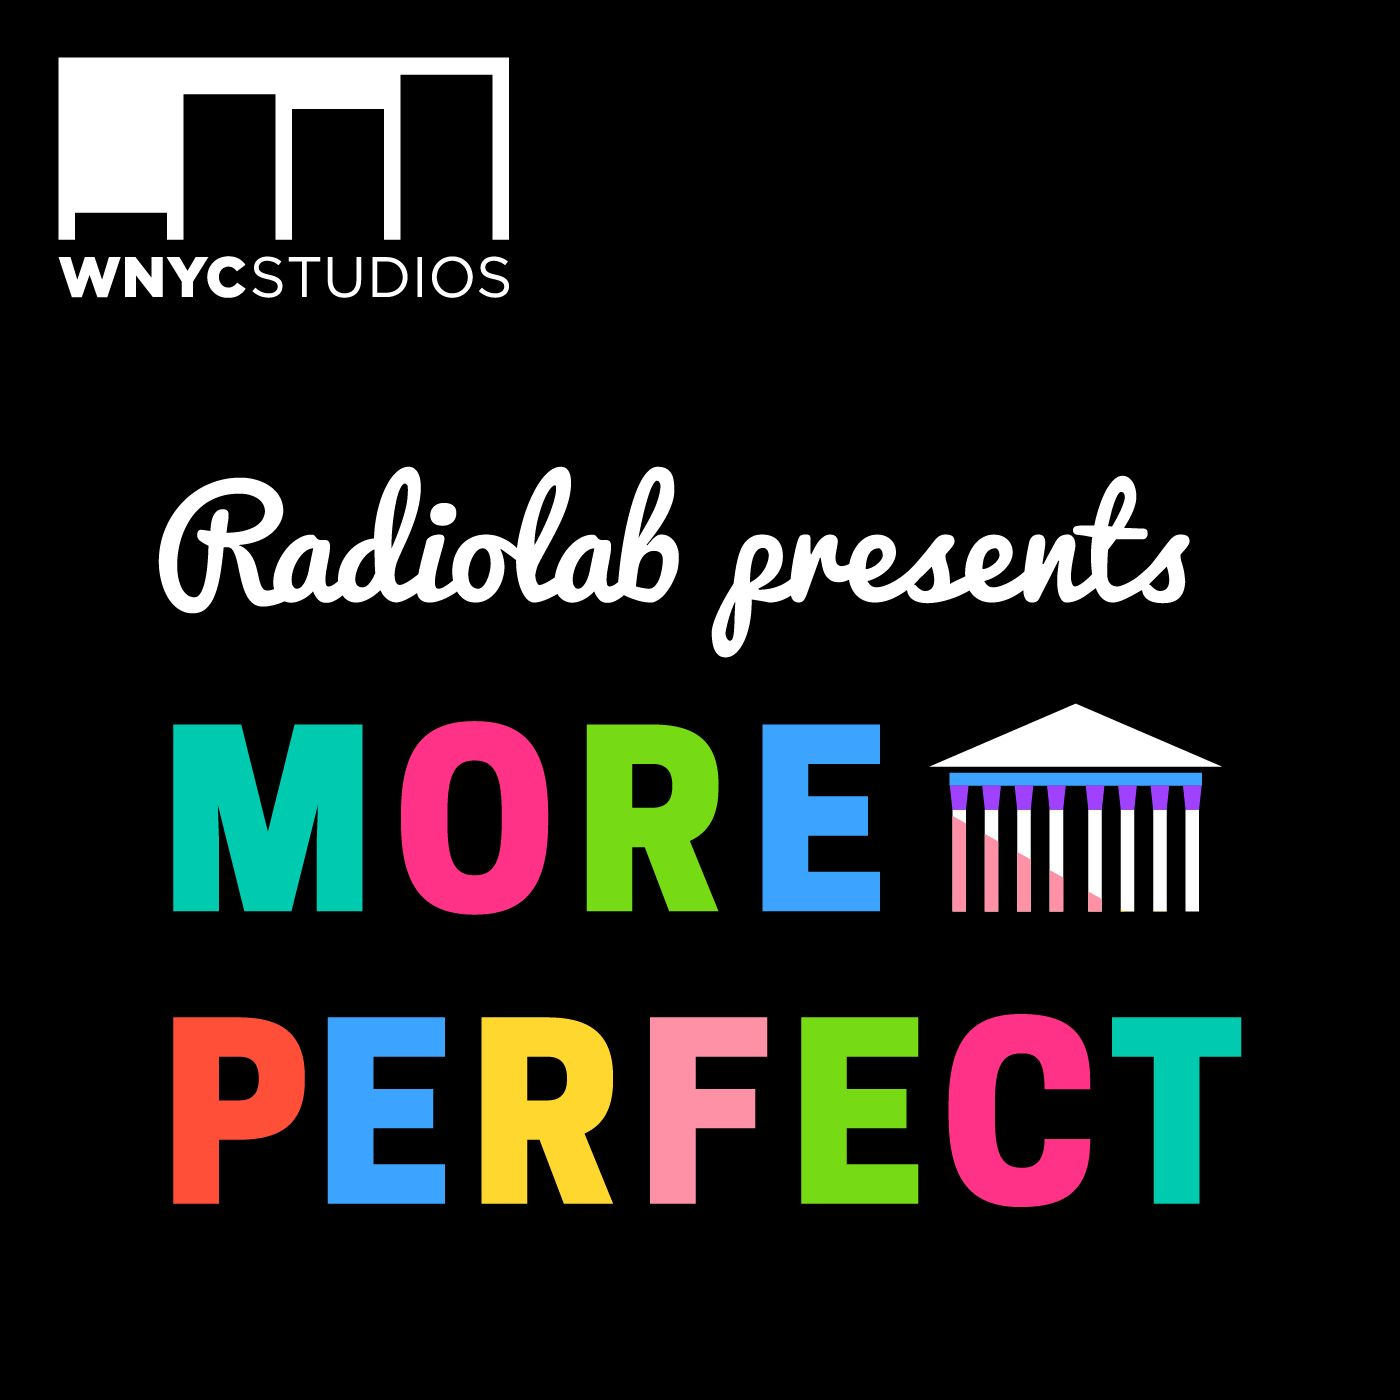 Check out this great Podcast: https://itunes.apple.com/us/podcast/radiolab-presents-more-perfect/id1117202653?mt=2